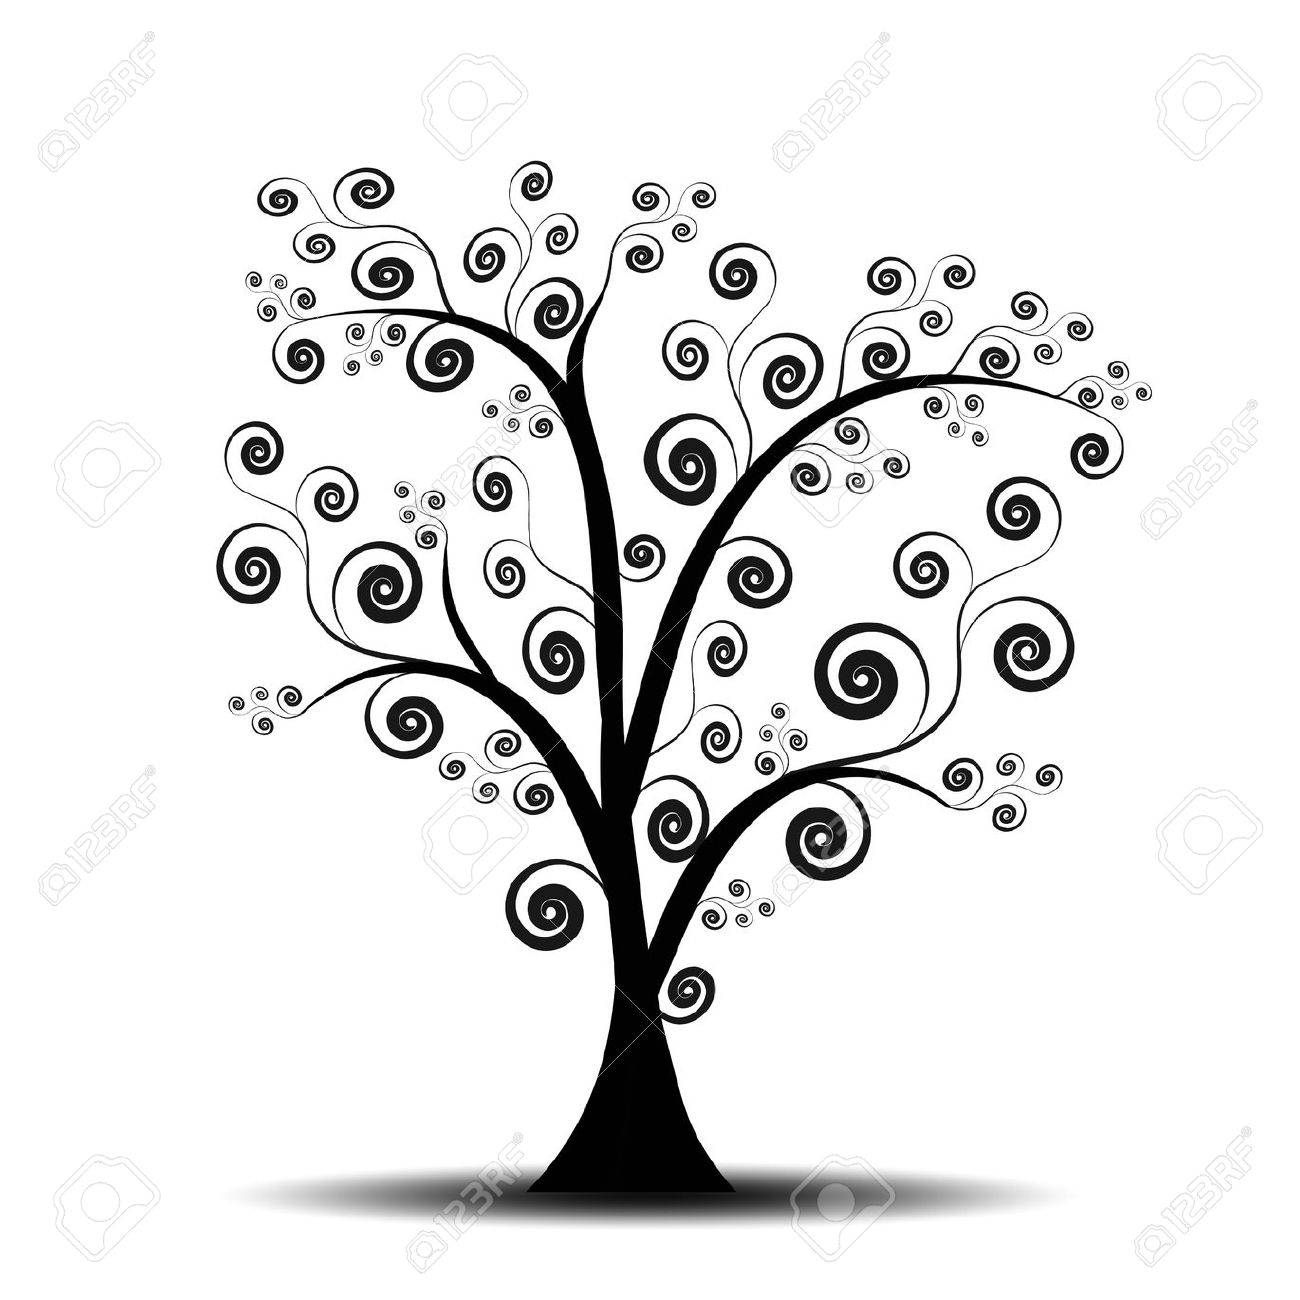 http://theartmad.com/wp-content/uploads/Black-And-White-Tree-Abstract-Drawing-02.jpg